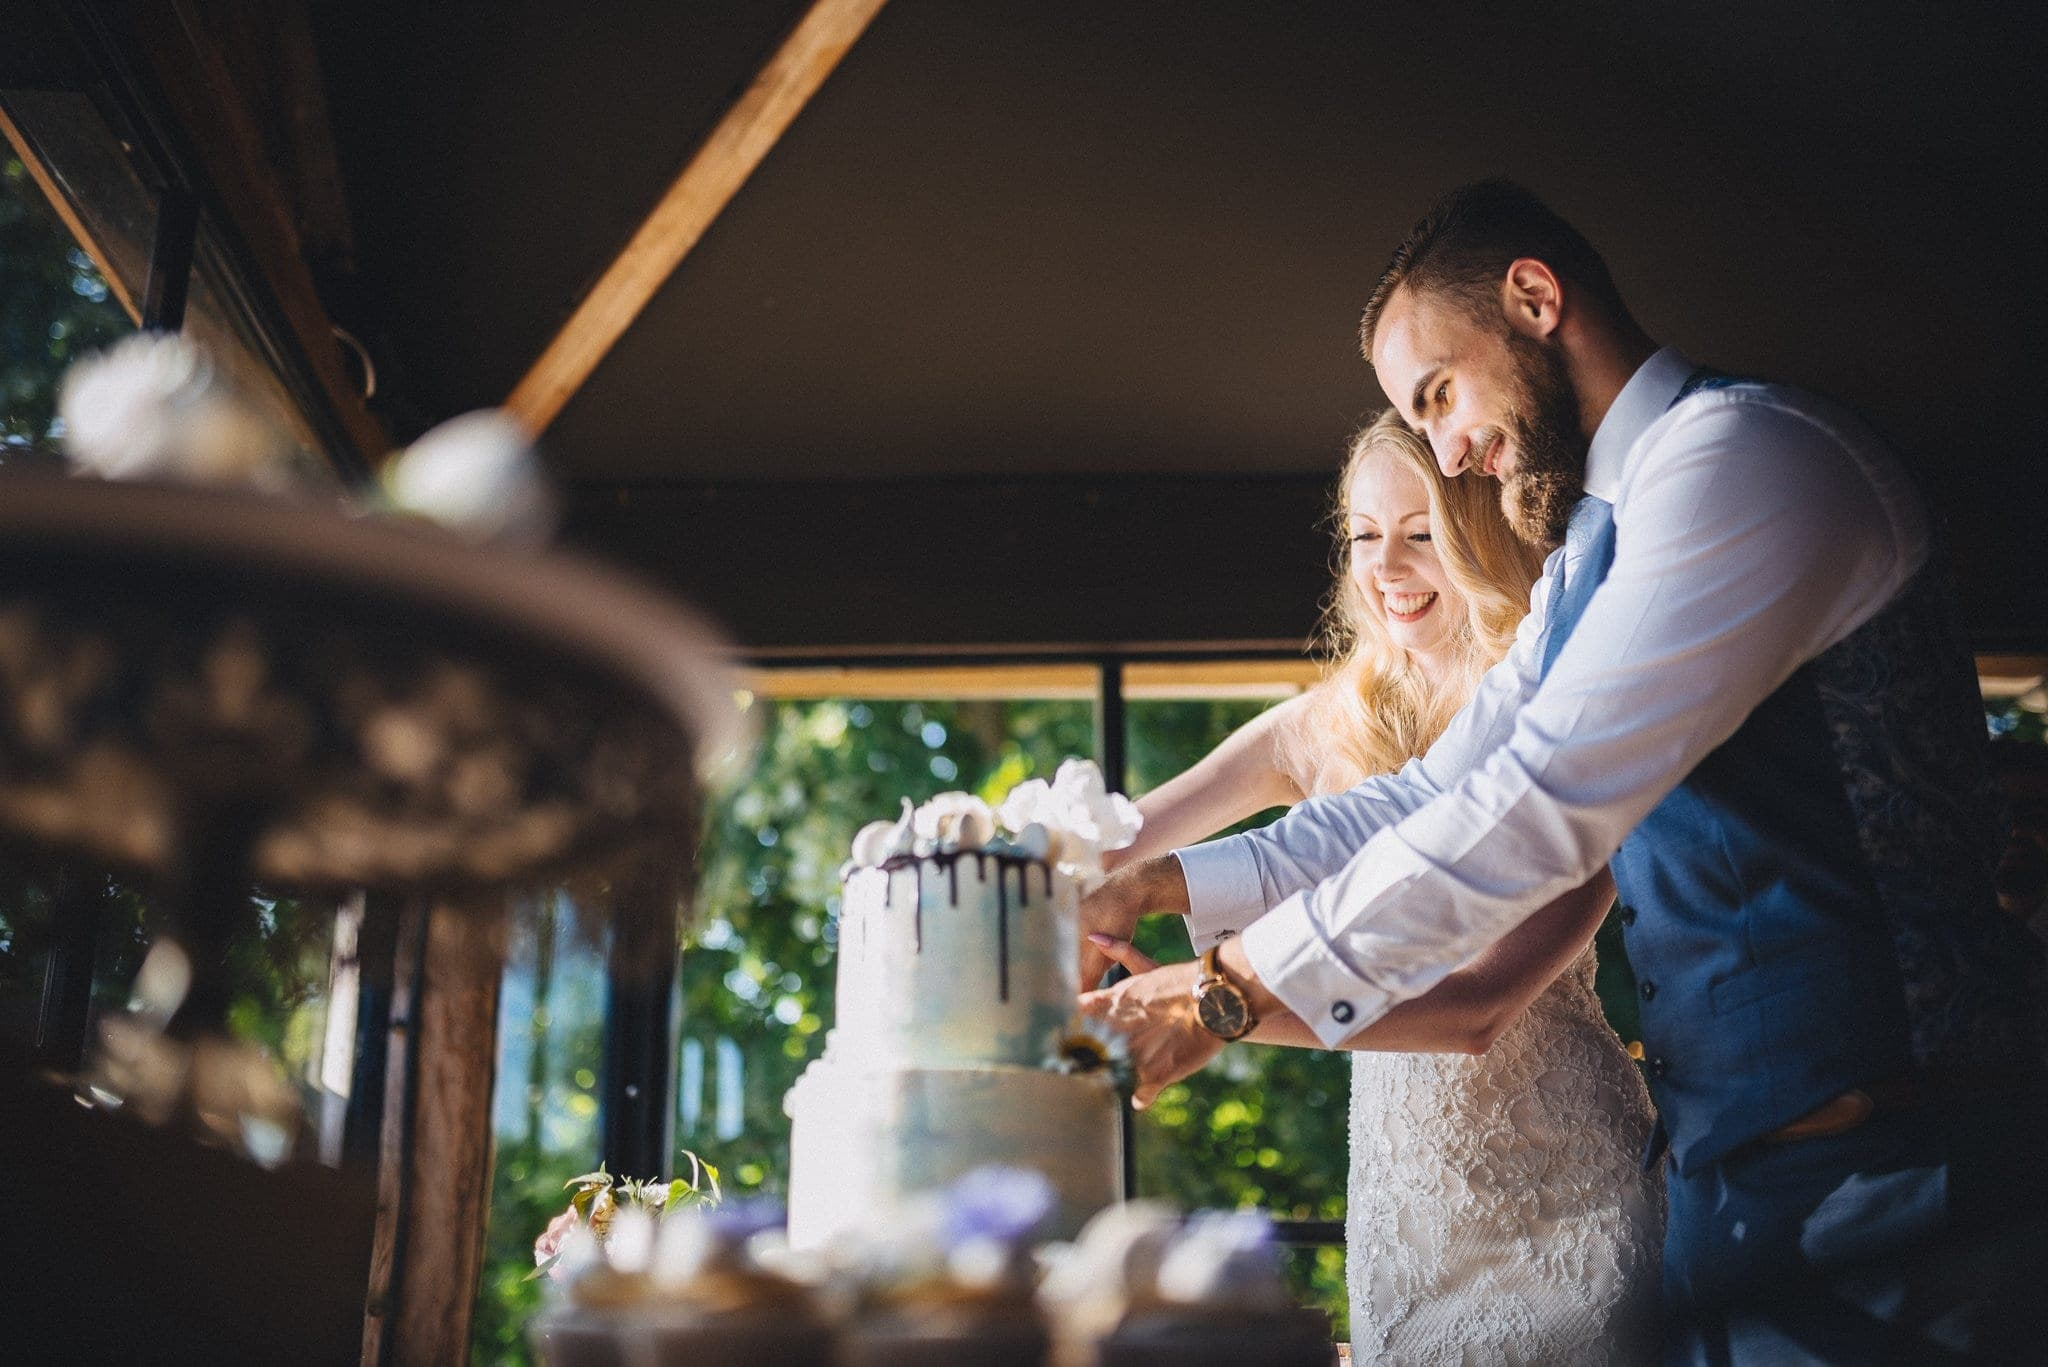 Bride and Groom cutting their wedding cake at their Dewsall Court Wedding